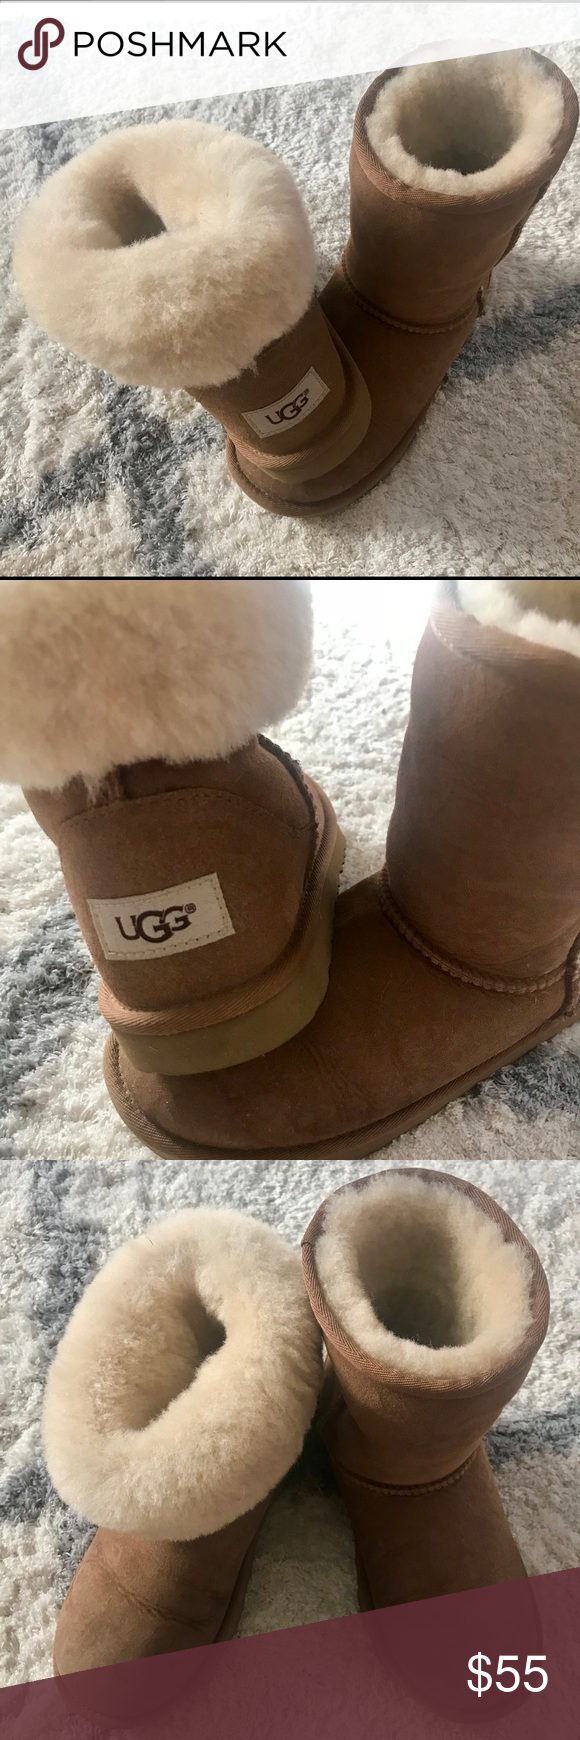 59b350bffe6 Spotted while shopping on Poshmark: UGG Boots kids Size 3 ...